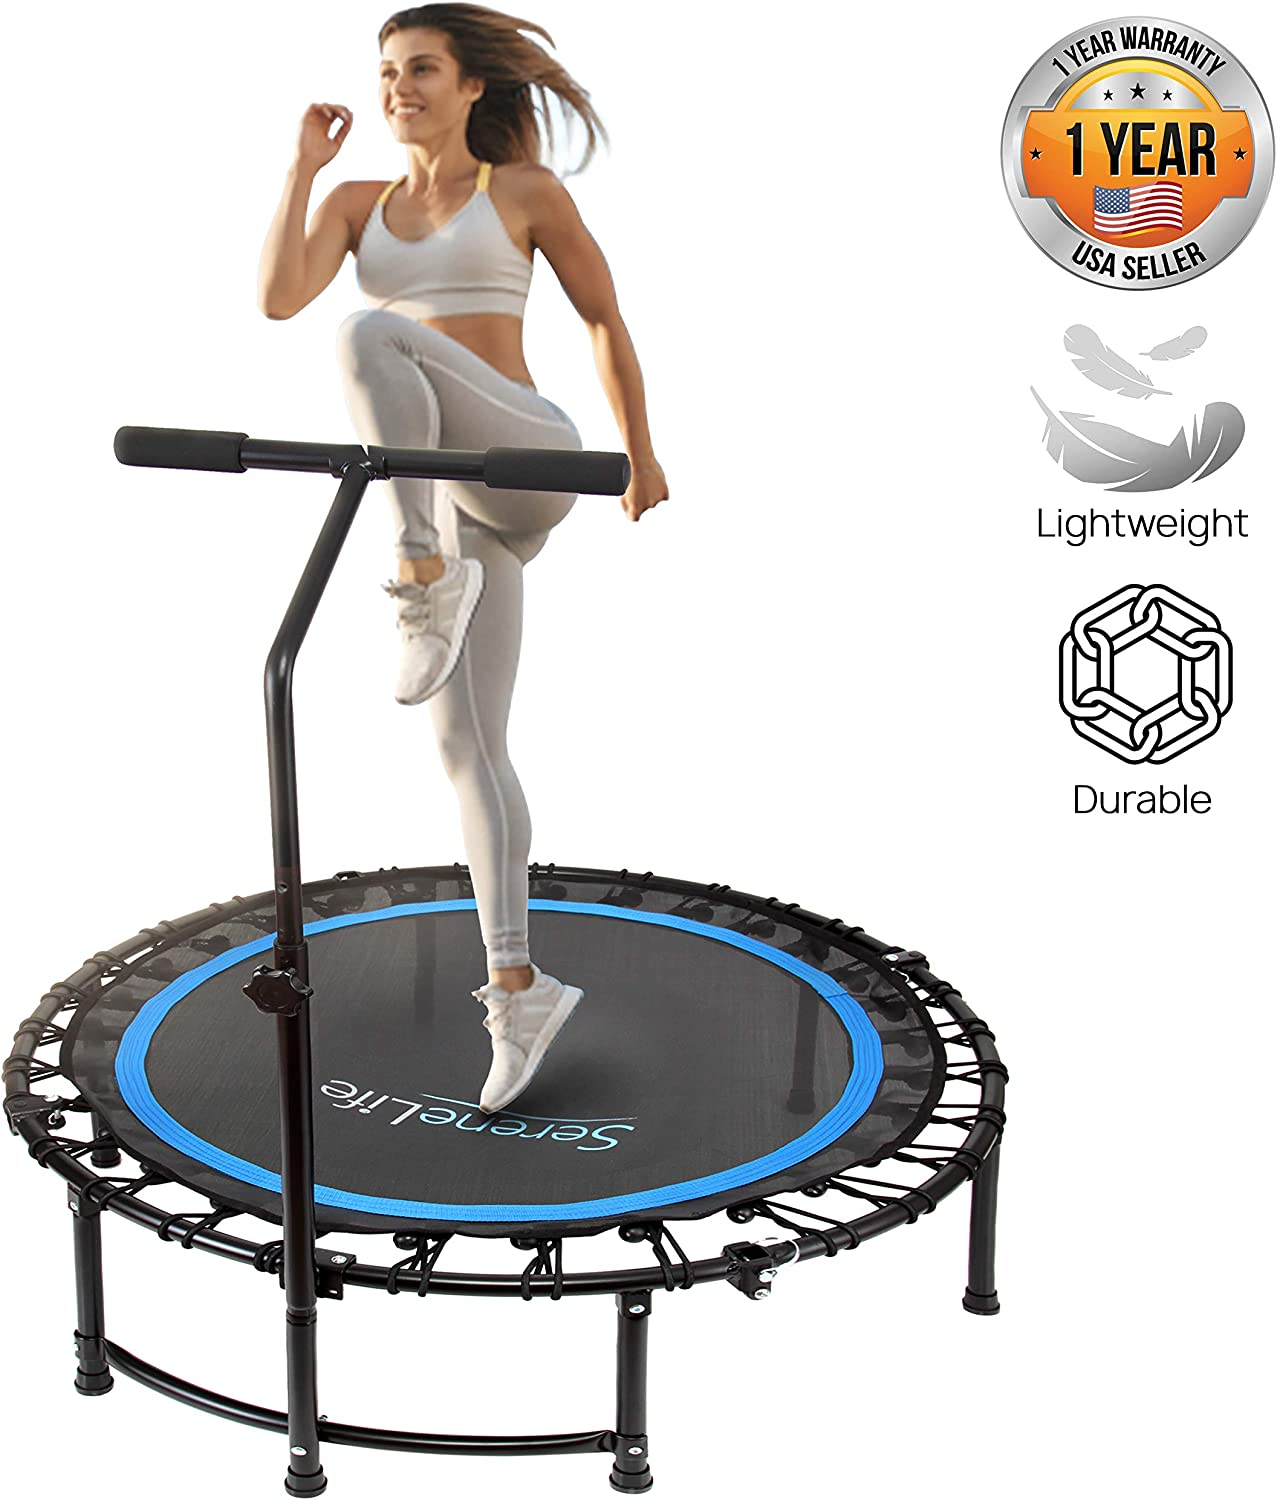 "SereneLife 36"" Inch Portable Fitness Trampoline"